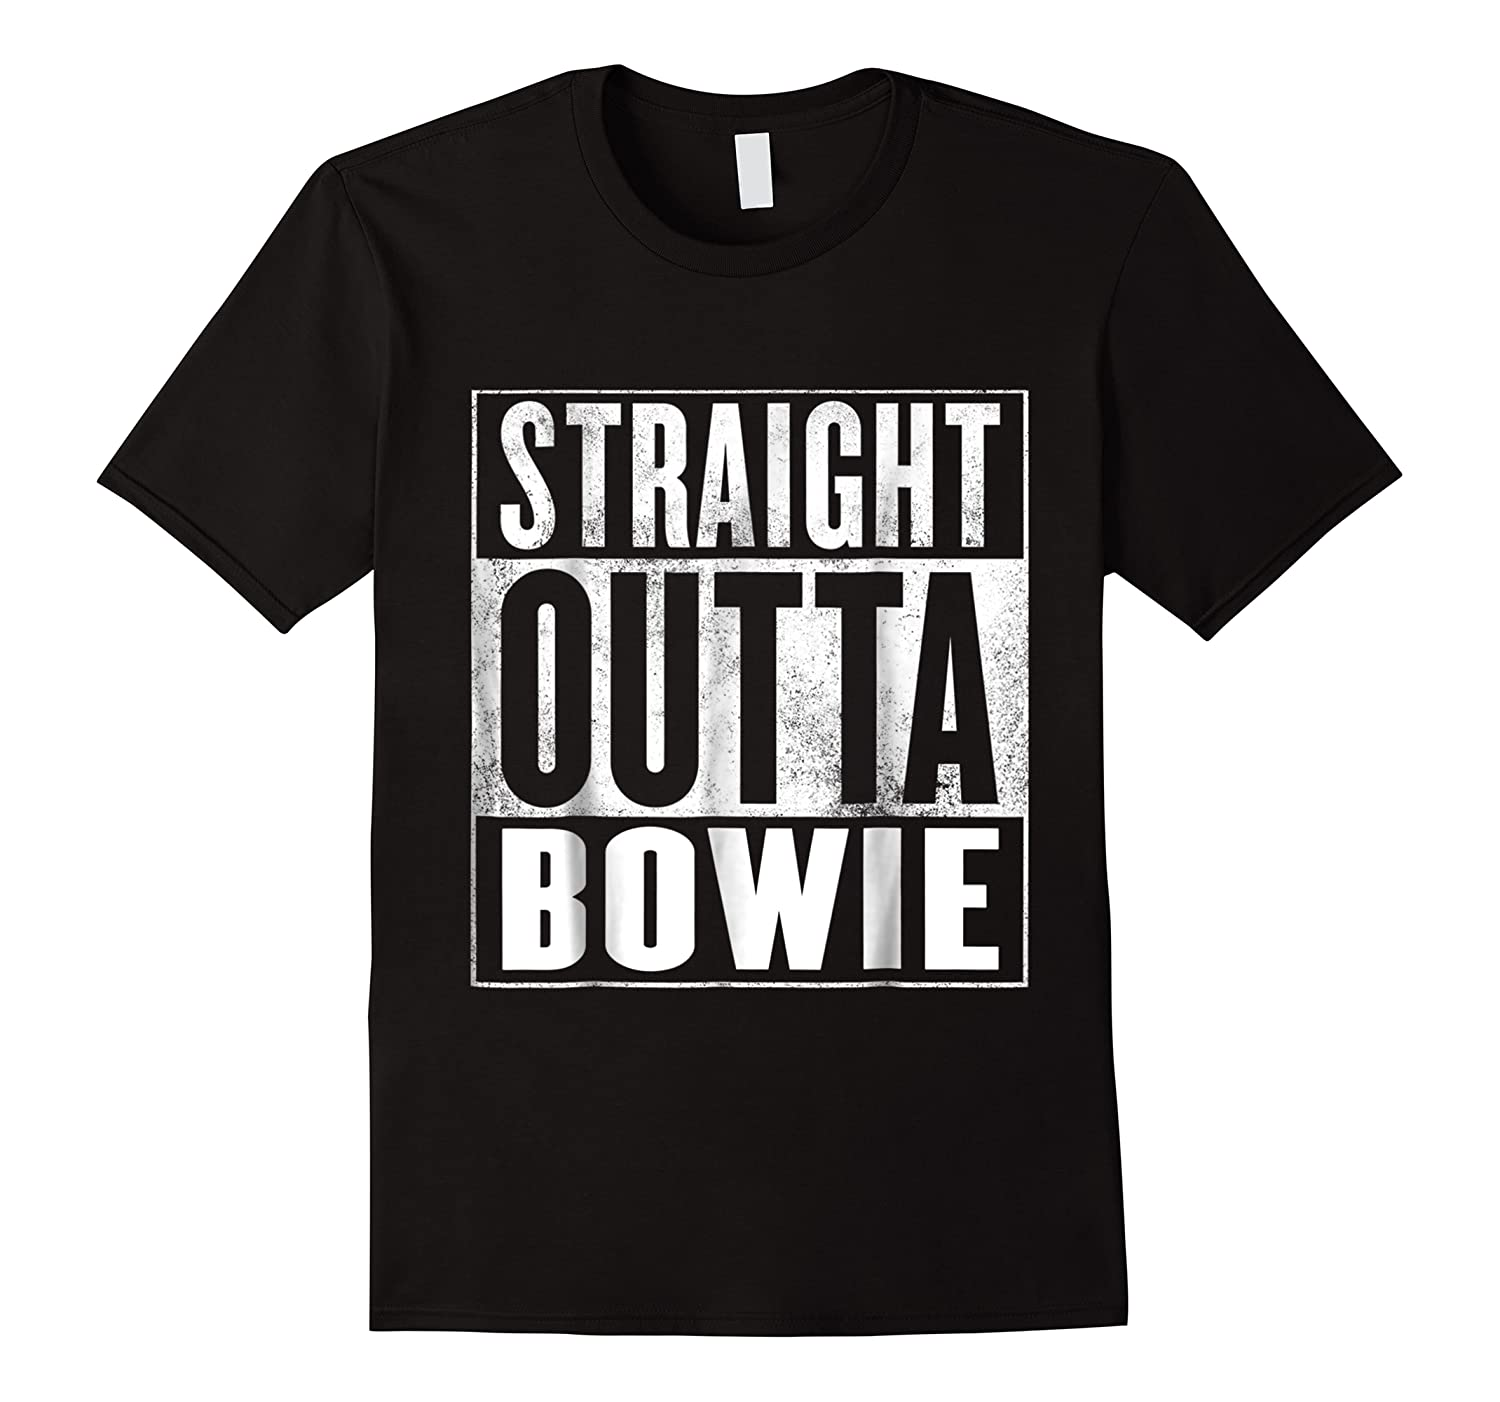 Bowie Straight Outta Bowie Shirts